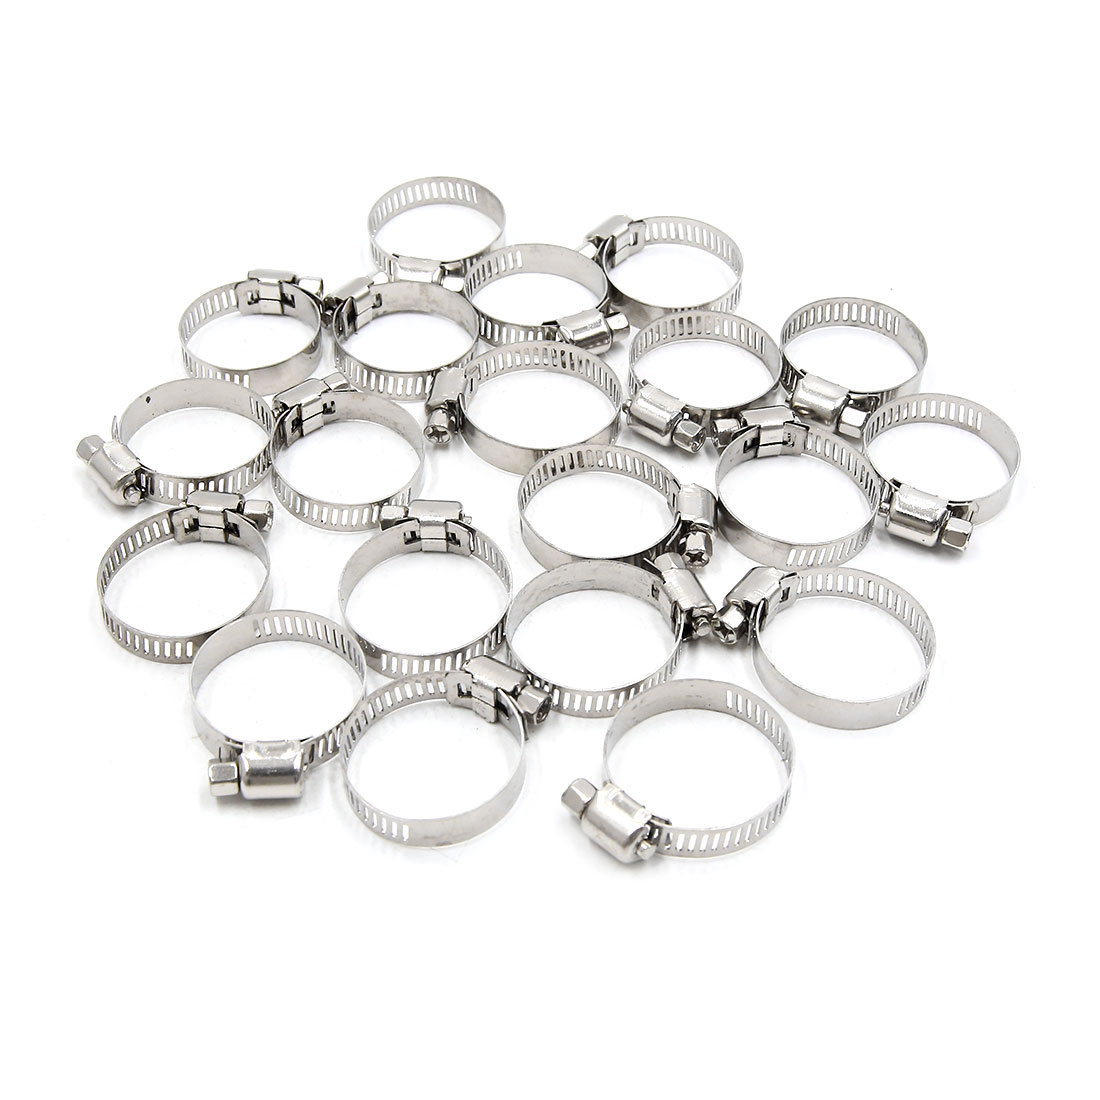 20Pcs Metal Adjustable 19-29mm Drive Hose Clamp Fuel Line  Pipe Tube Tight Clip